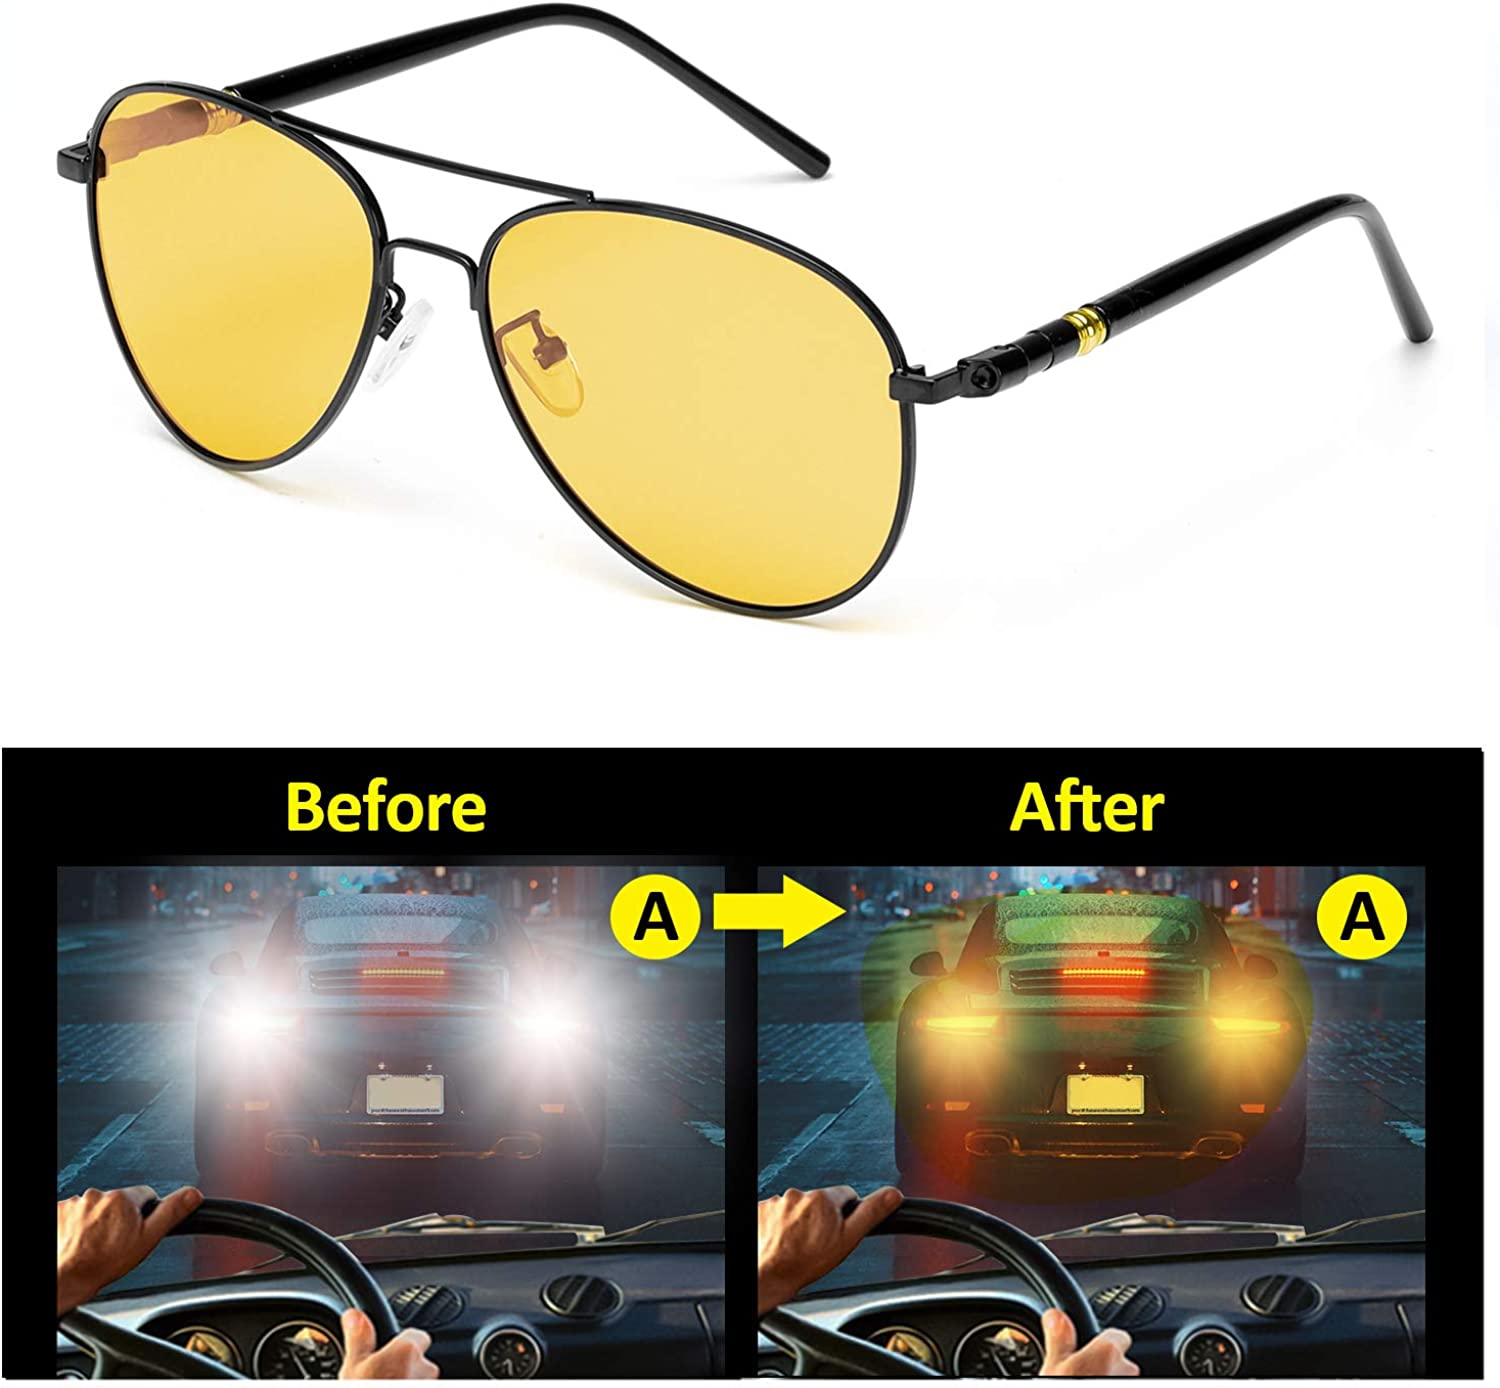 Anti-glare Eyewear Polarized HD Night-Vision Glasses for Safe Driving 100/% UVA UVB Protection SODQW Night-Driving Glasses